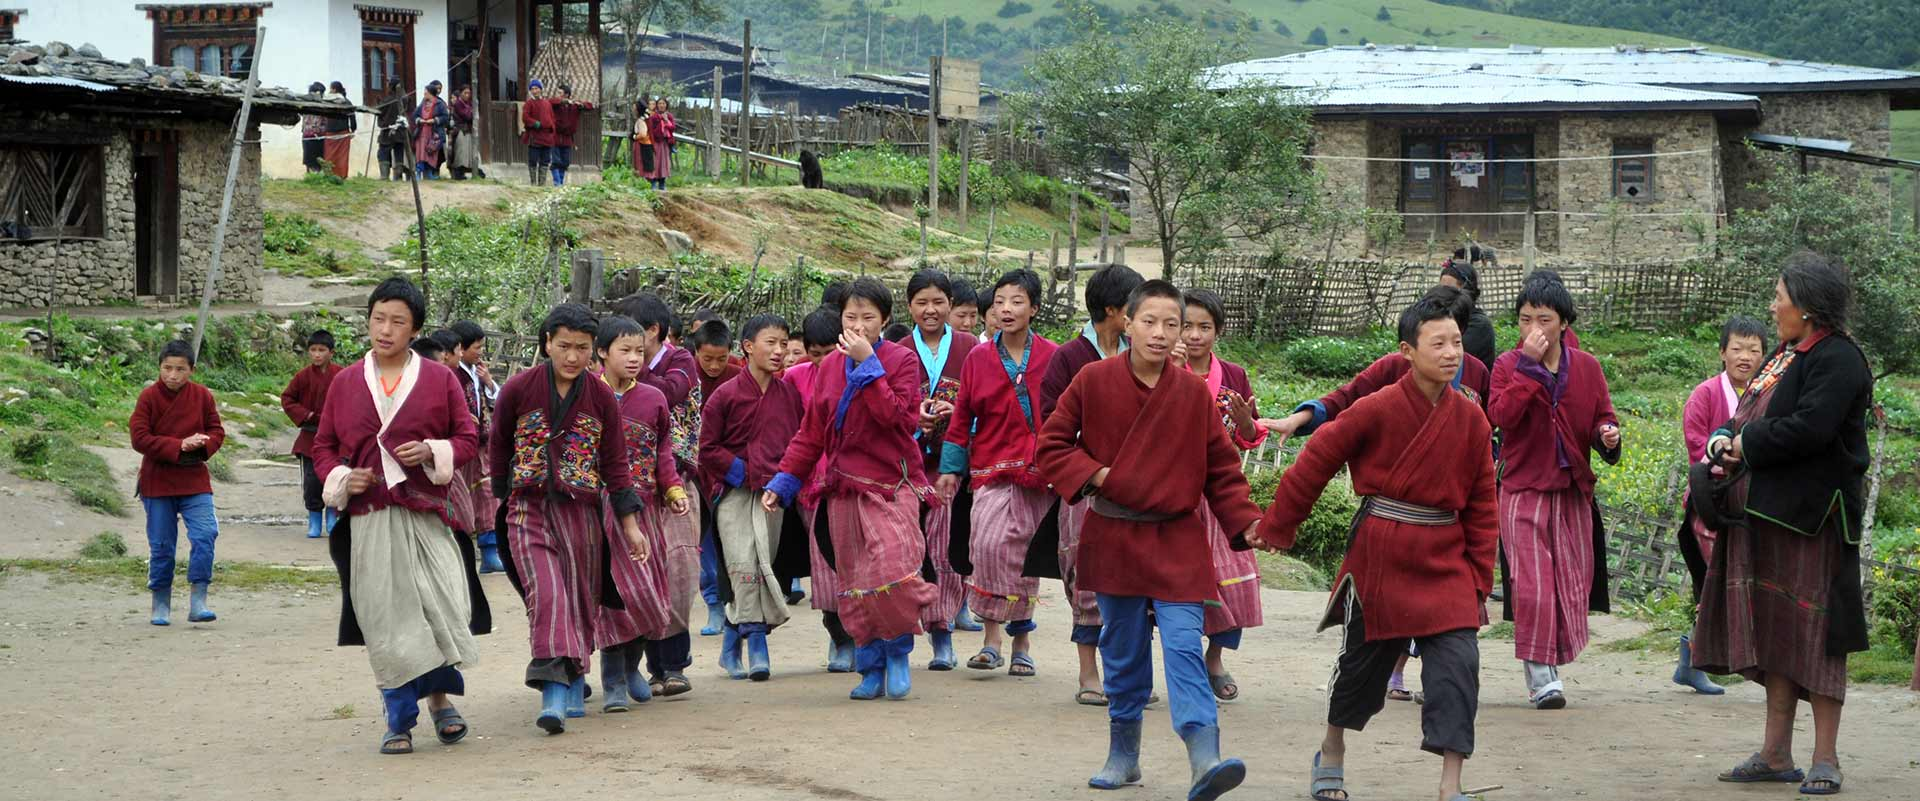 Students of remote Sakteng Village in eastern Bhutan